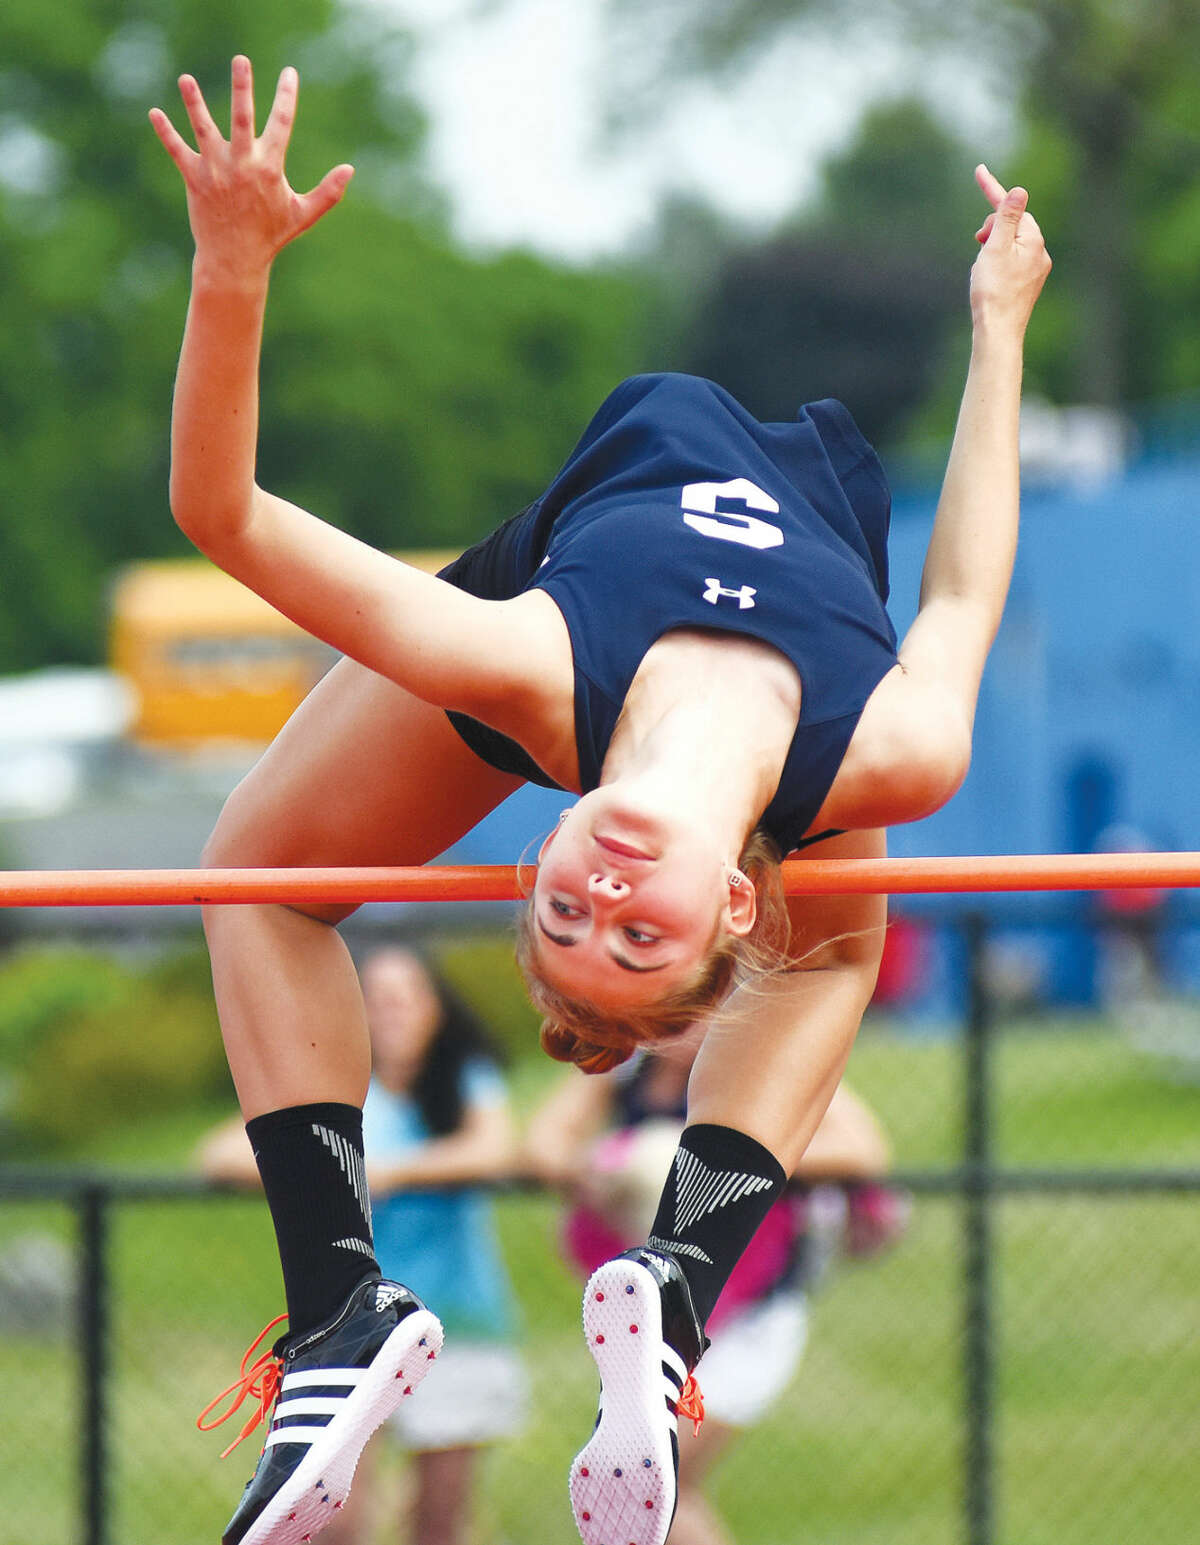 Hour photo/John Nash - Staples High School's Elizabeth Knoll arches herself over the high jump during Tuesday's FCIAC track and field championship meet in Danbury. Knoll won the event with a jump of 5-feet-6.